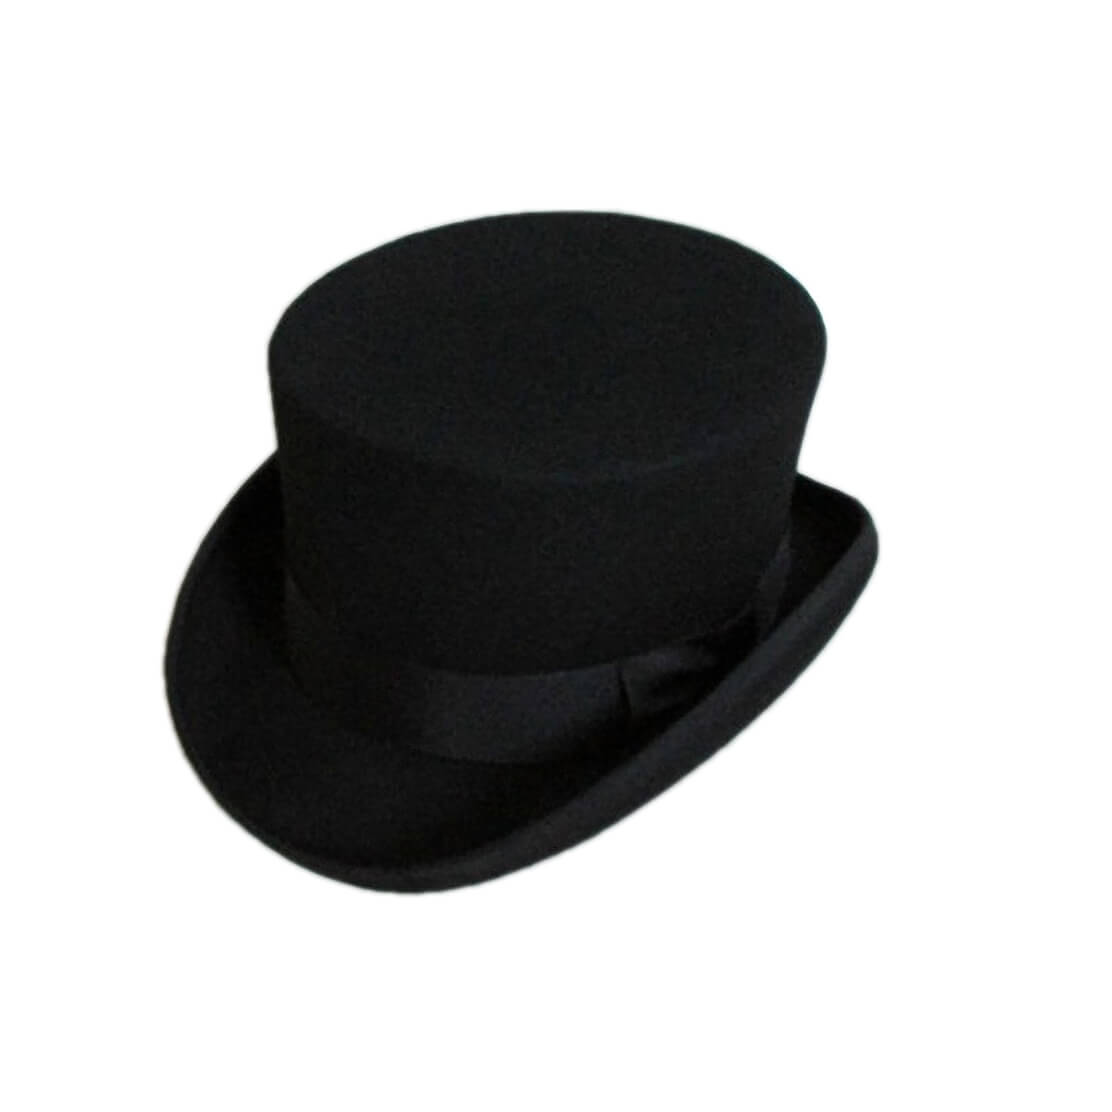 British Style Men & Women Woollen hat / Steampunk Fashion / Stage clothing for rock musicians - HARD'N'HEAVY